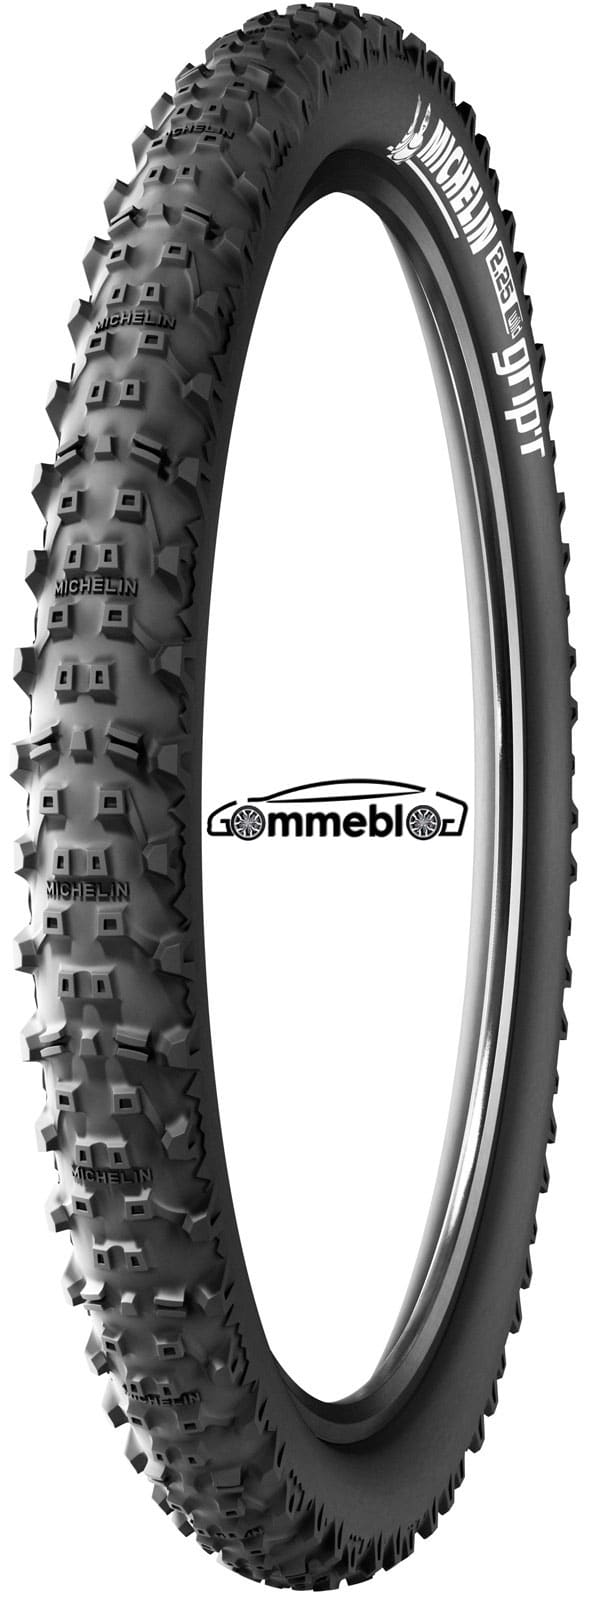 Michelin-Wild-Grip-R-mtb